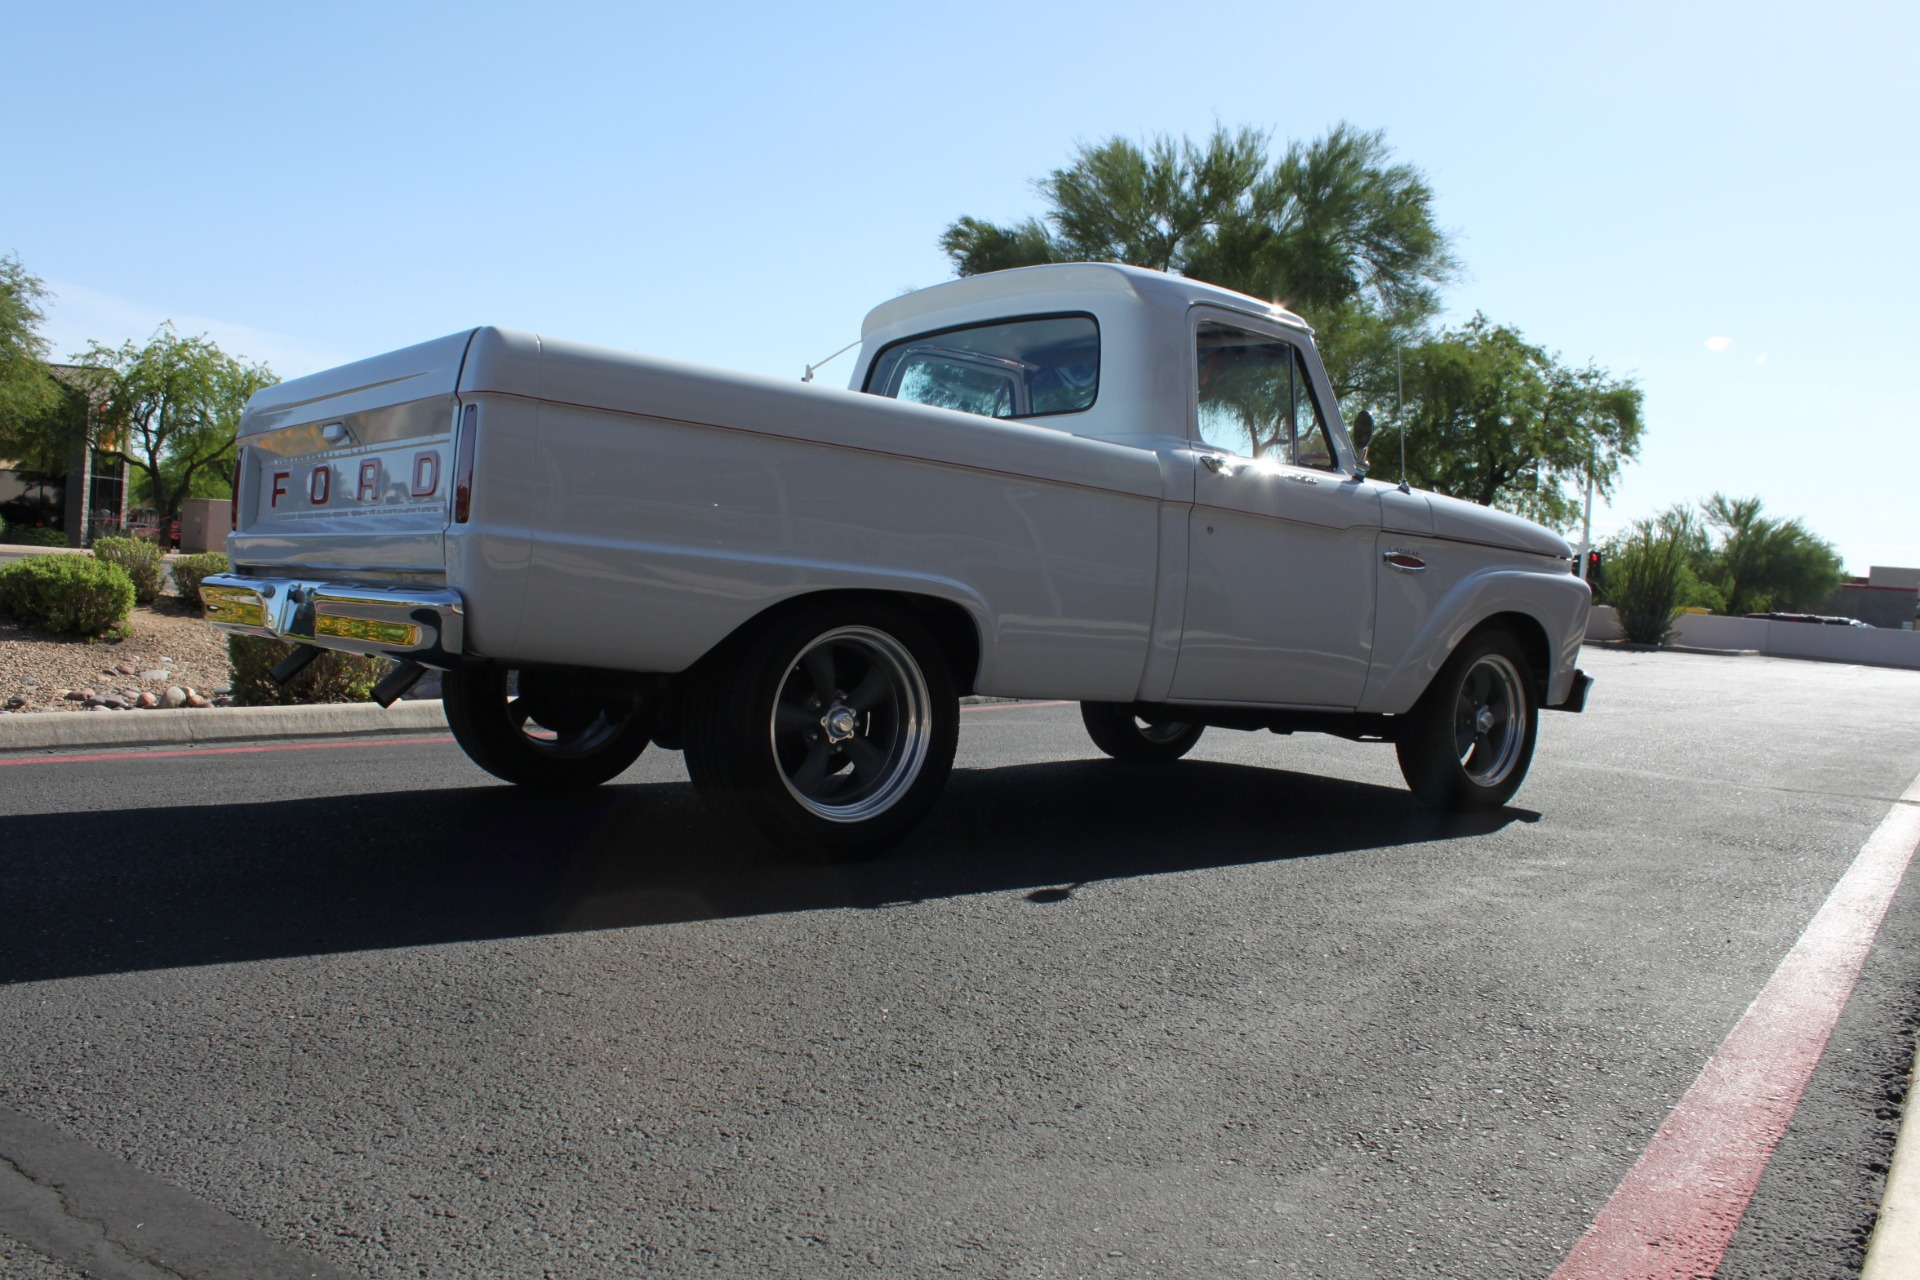 Used-1966-Ford-F-100-Custom-Cab-Fiat